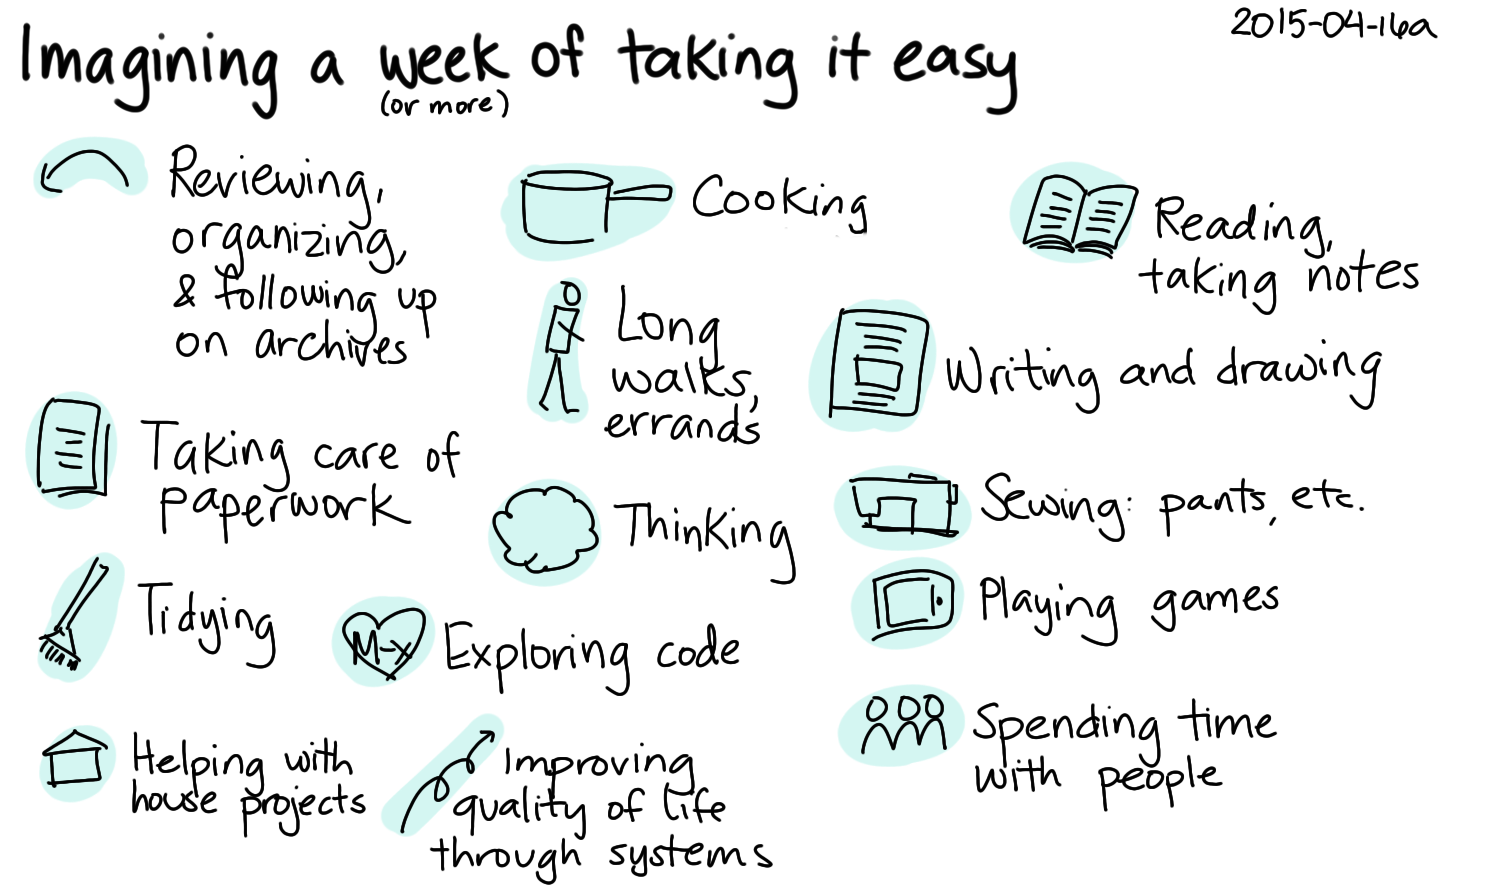 2015-04-16a Imagining a week of taking it easy -- index card #relaxing #life.png